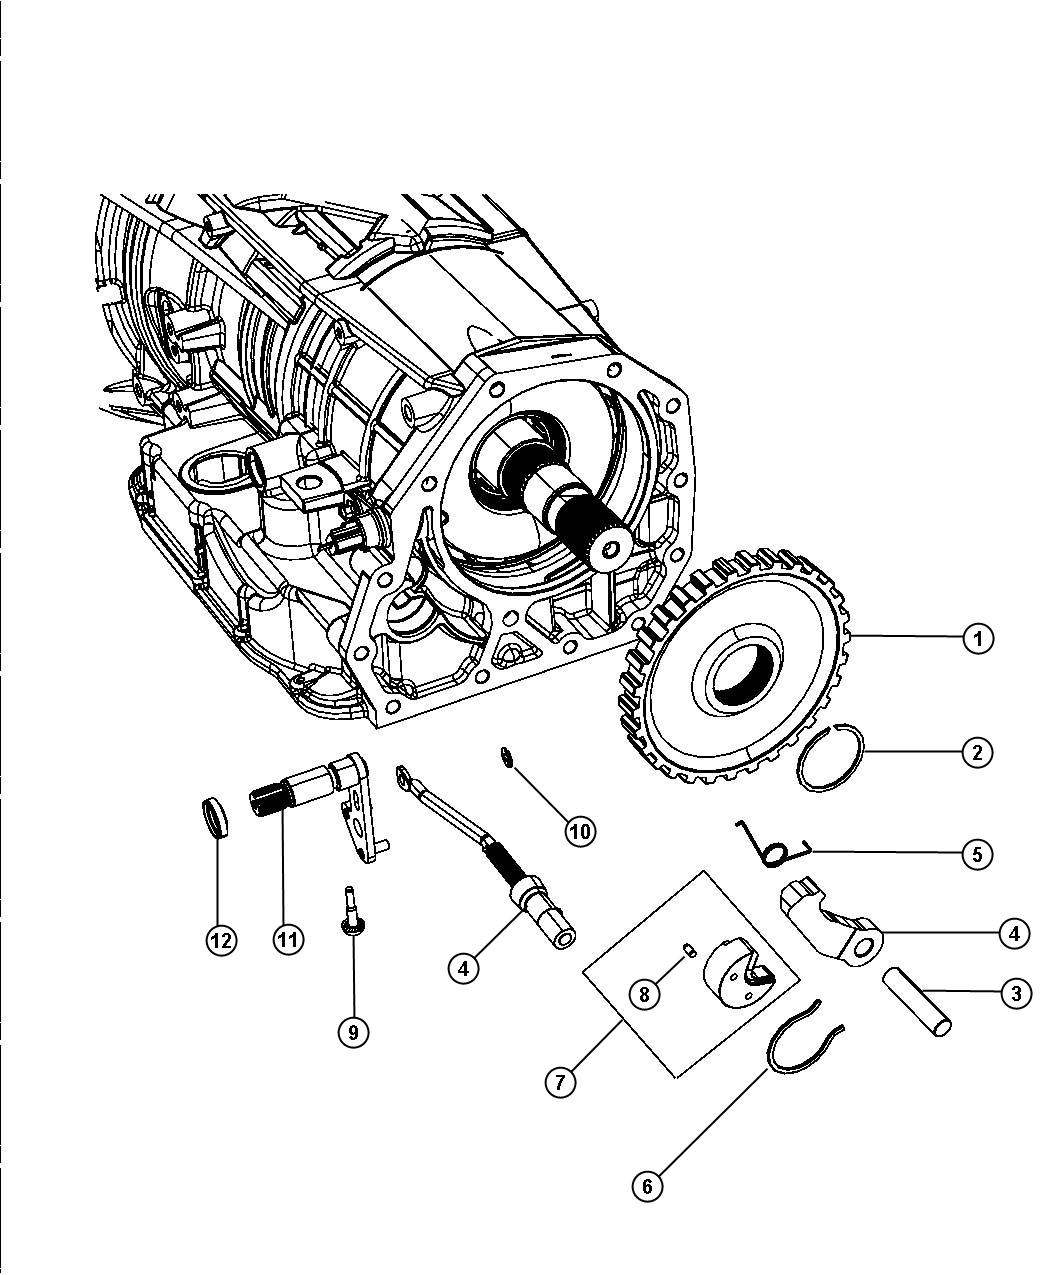 jeep liberty repair manual pdf